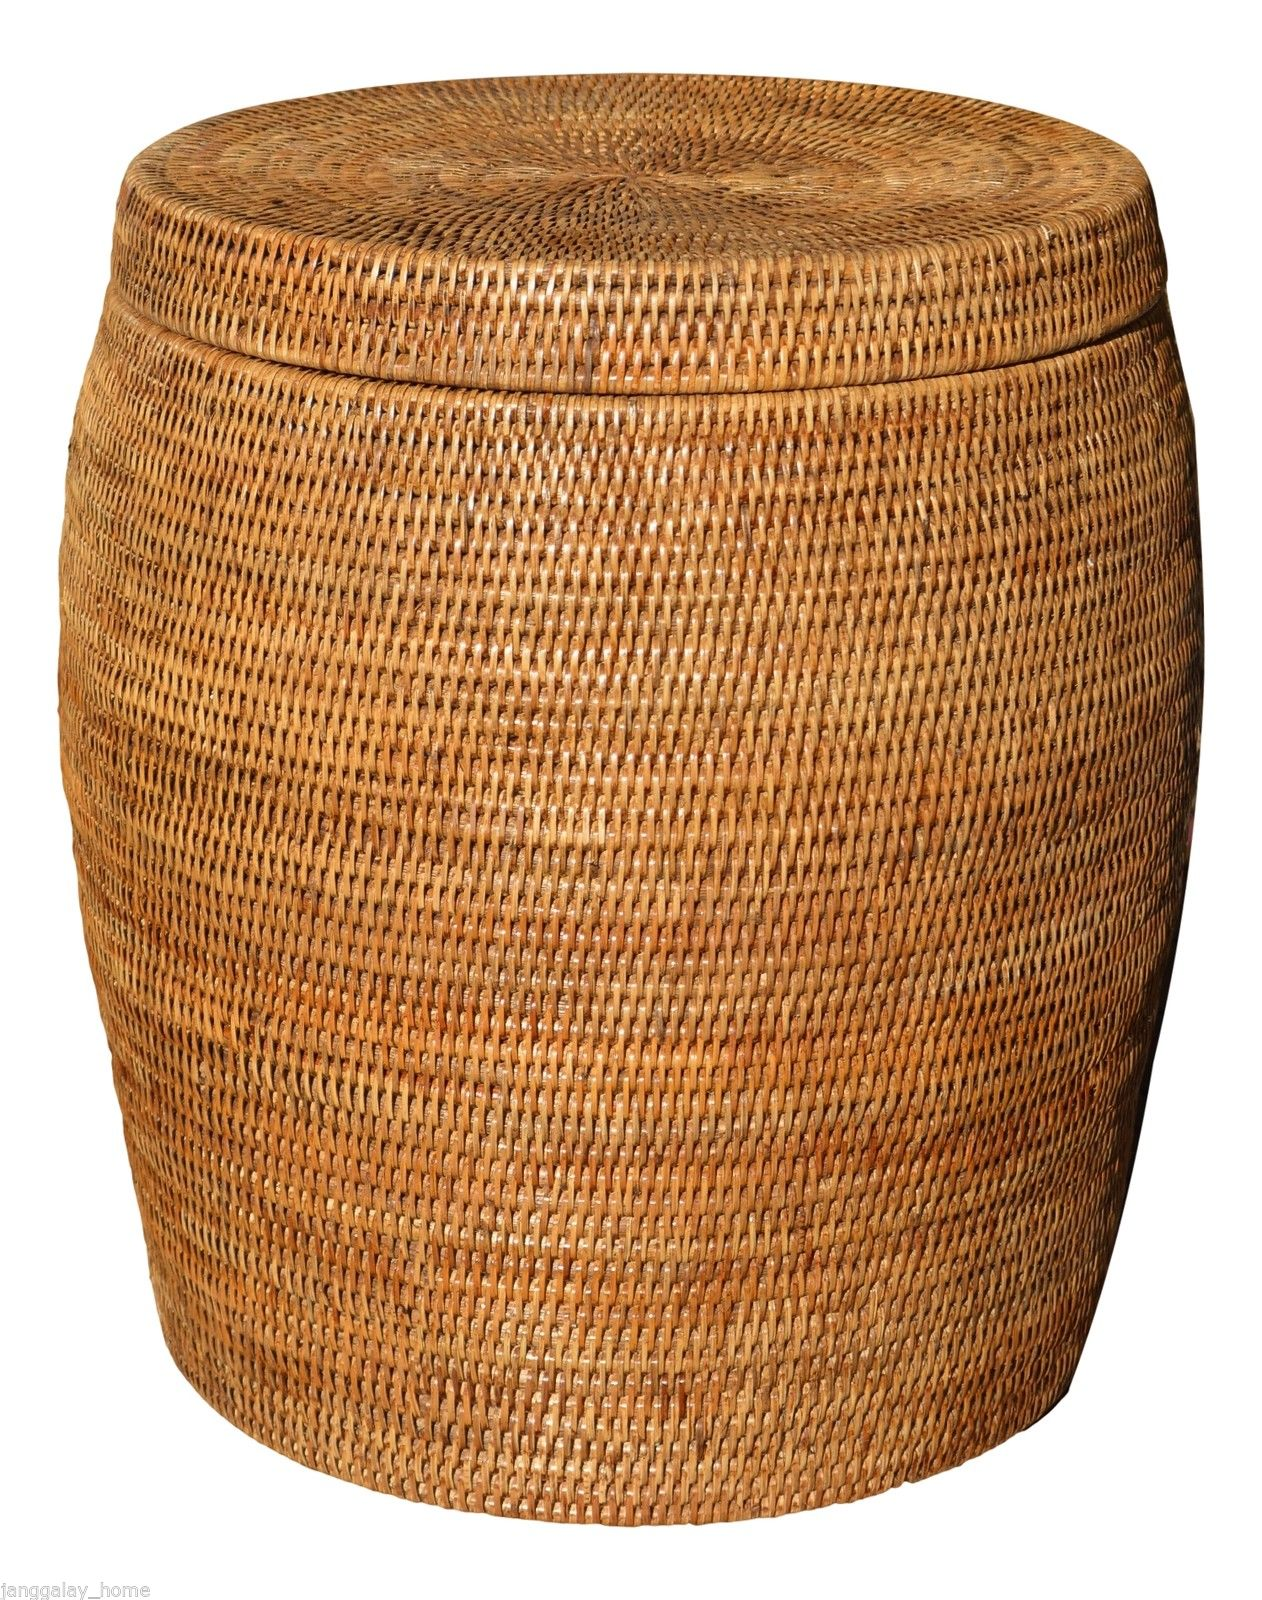 Elegant Laundry Hamper Elegant Rattan Drum Stool Side Table Or Laundry Basket